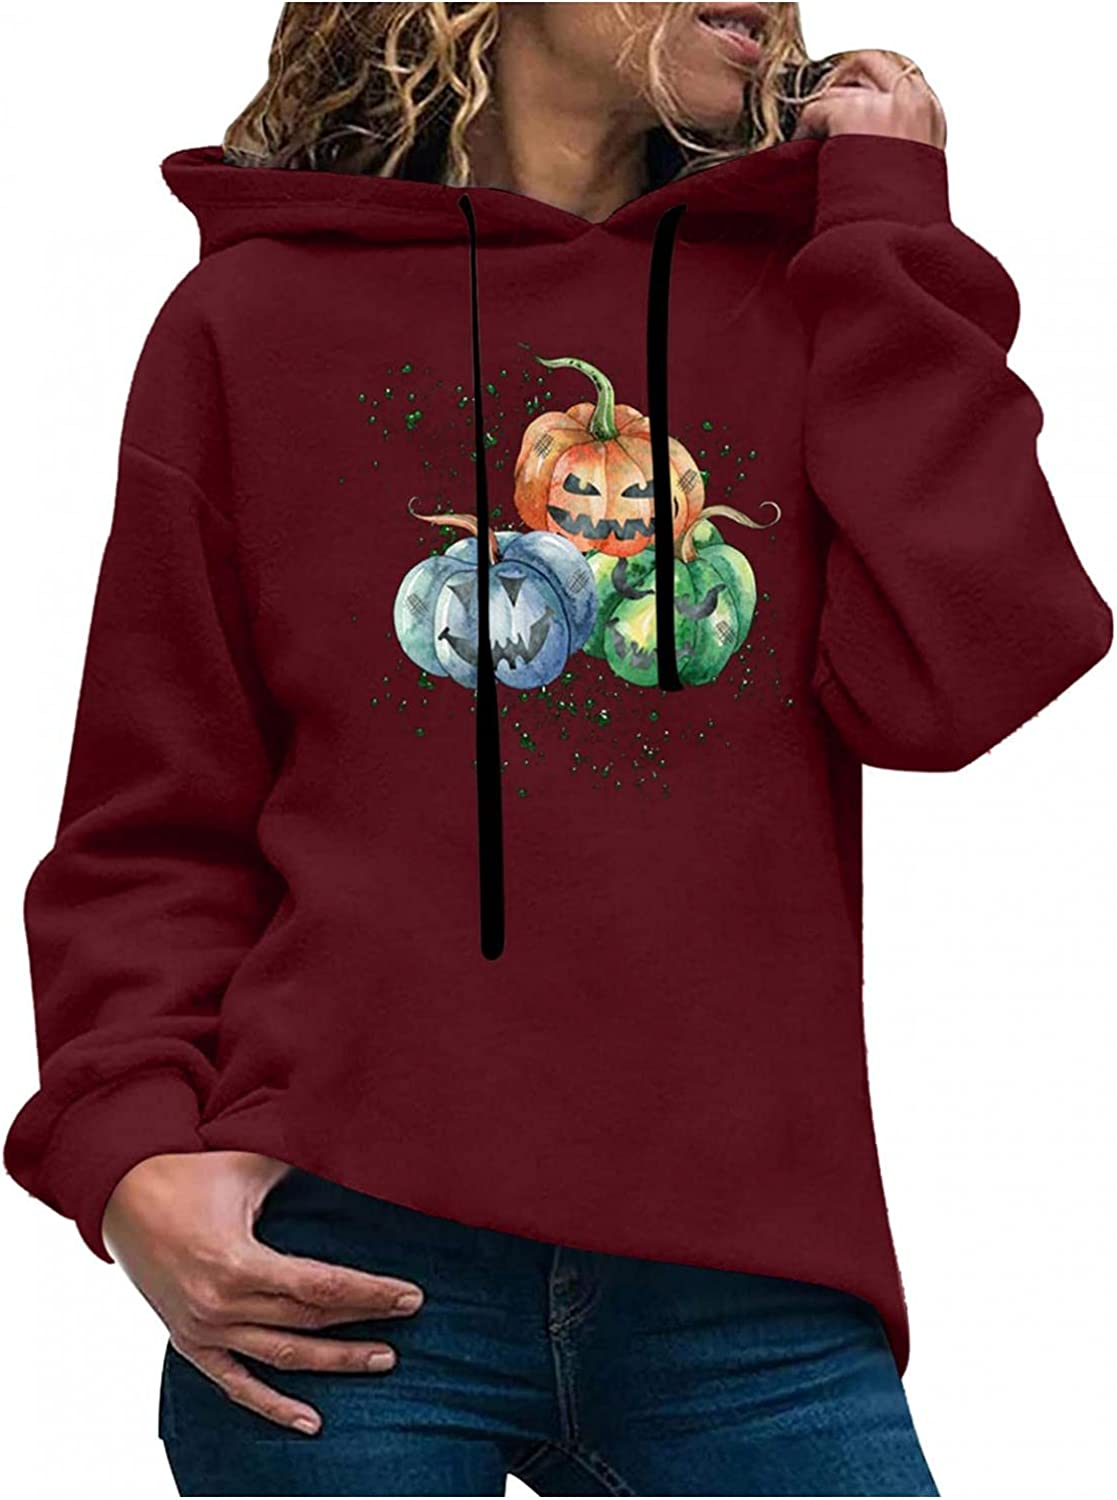 AODONG Womens Hoodies, Hoodie for Women Pumpkin Lantern Graphic Printed Long Sleeve Shirts Pullover Plus Size Fall Tops